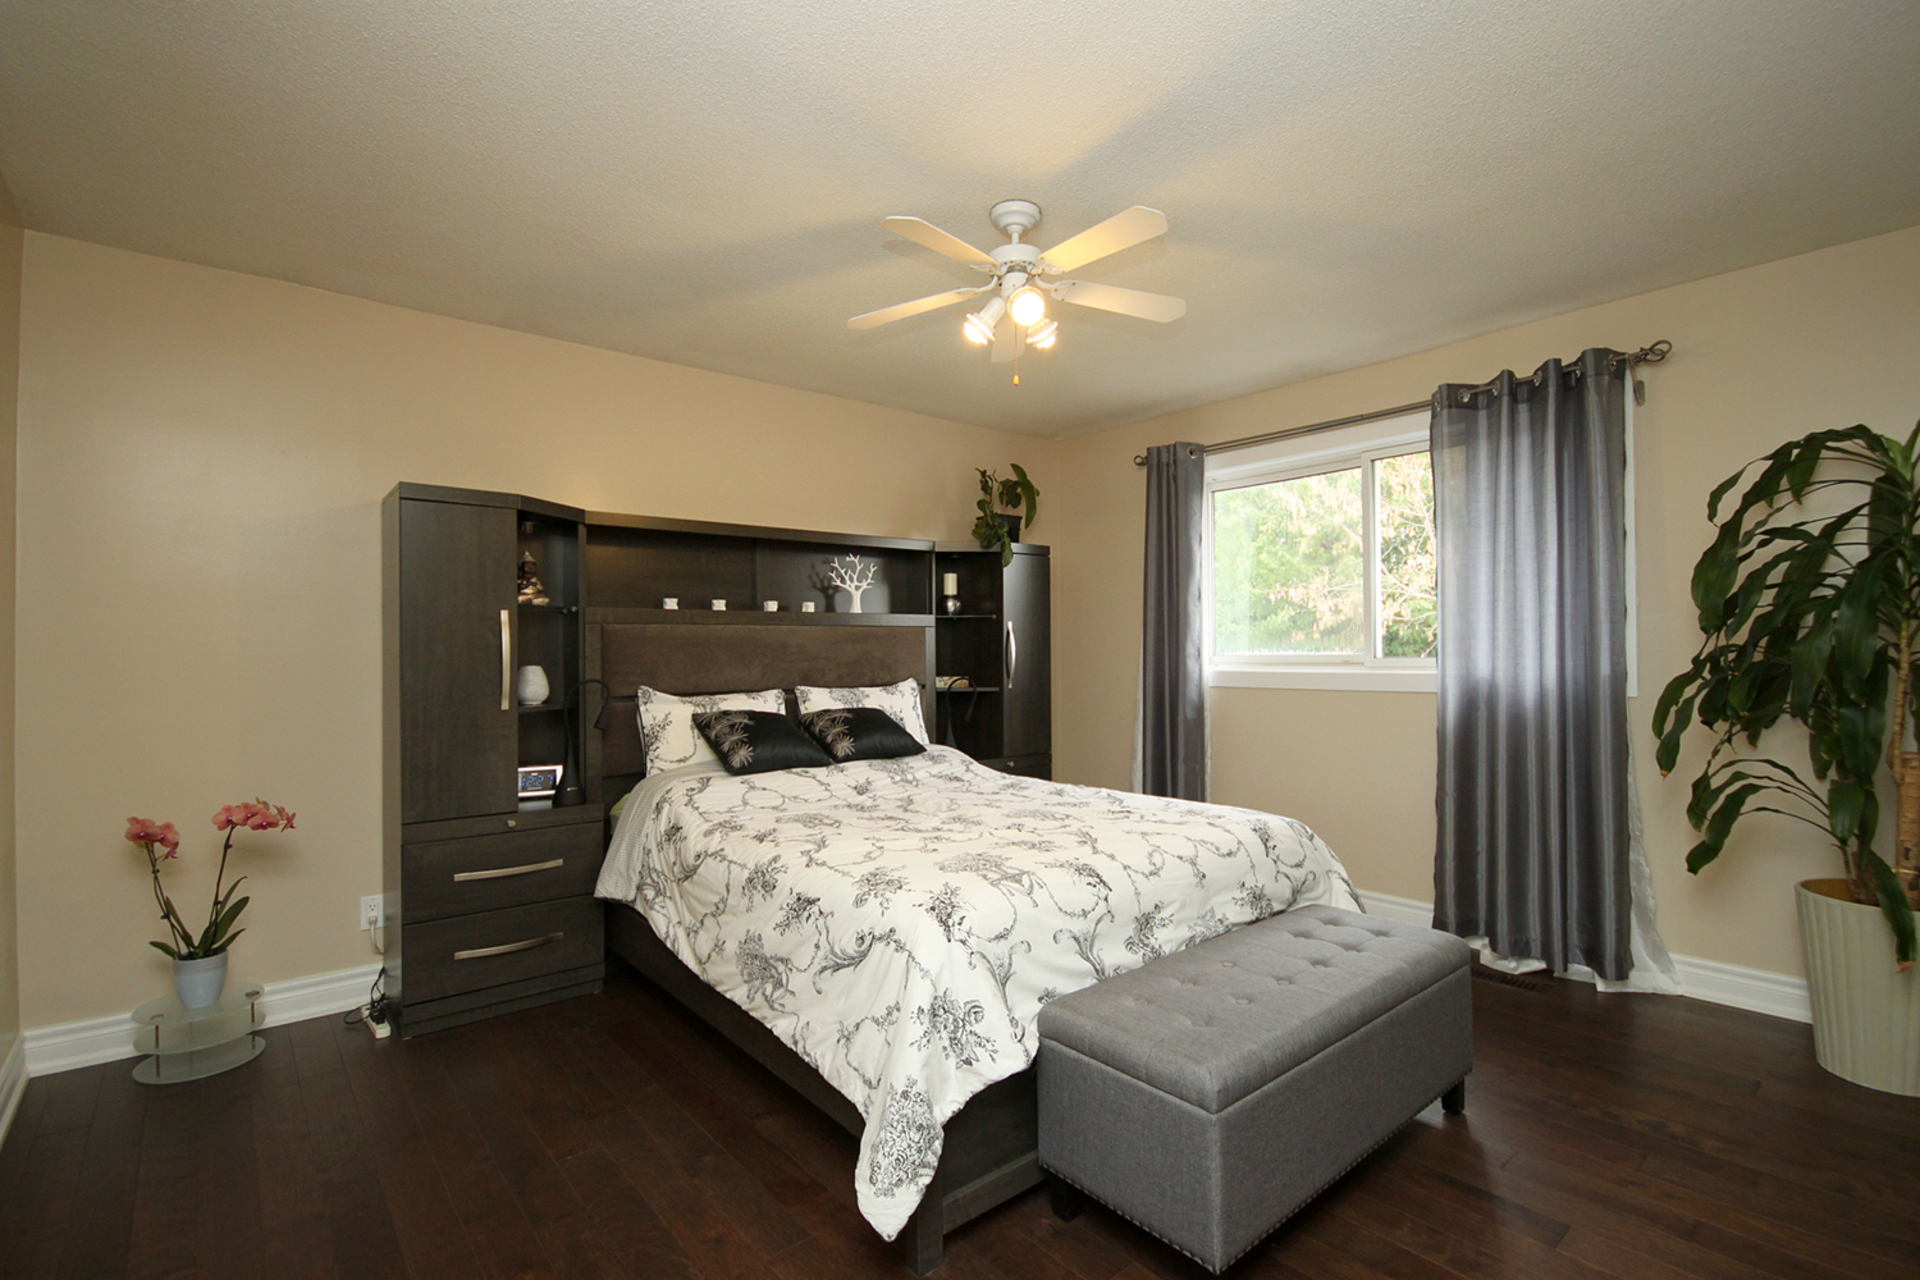 Master Bedroom at 14 Gretman Crescent, Aileen-Willowbrook, Markham